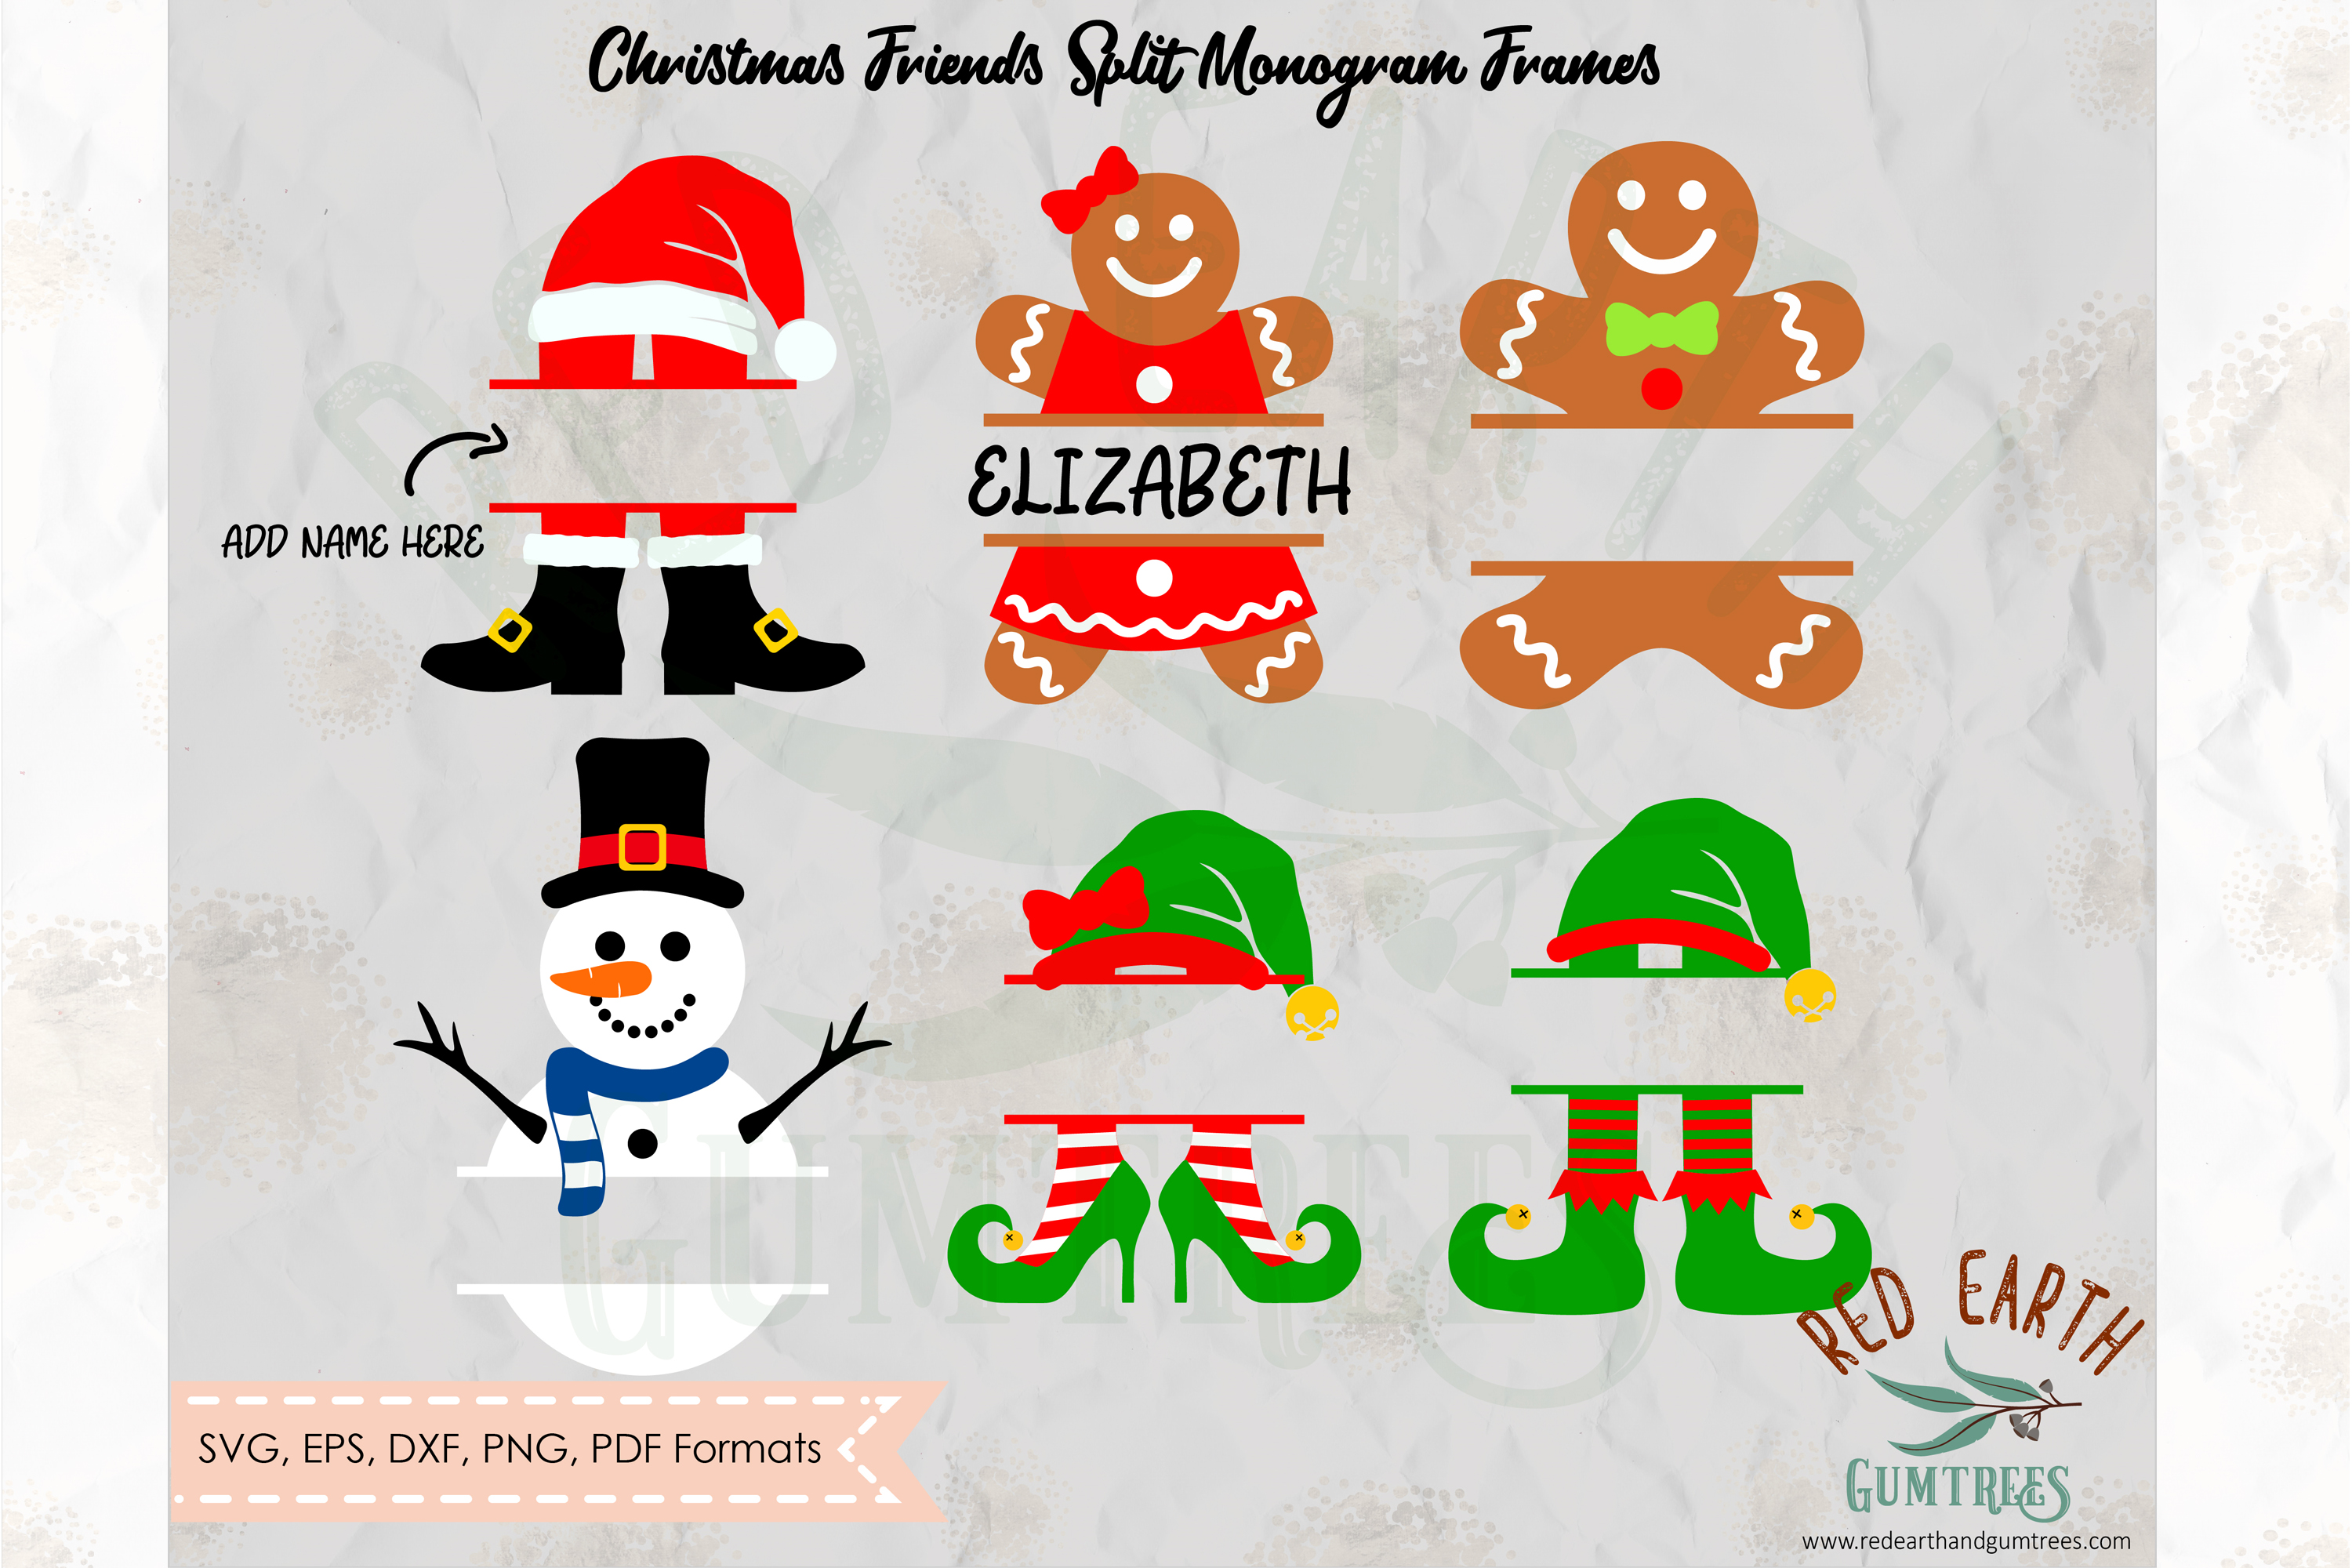 Download Free Christmas Friends Split Monogram Graphic By Redearth And for Cricut Explore, Silhouette and other cutting machines.